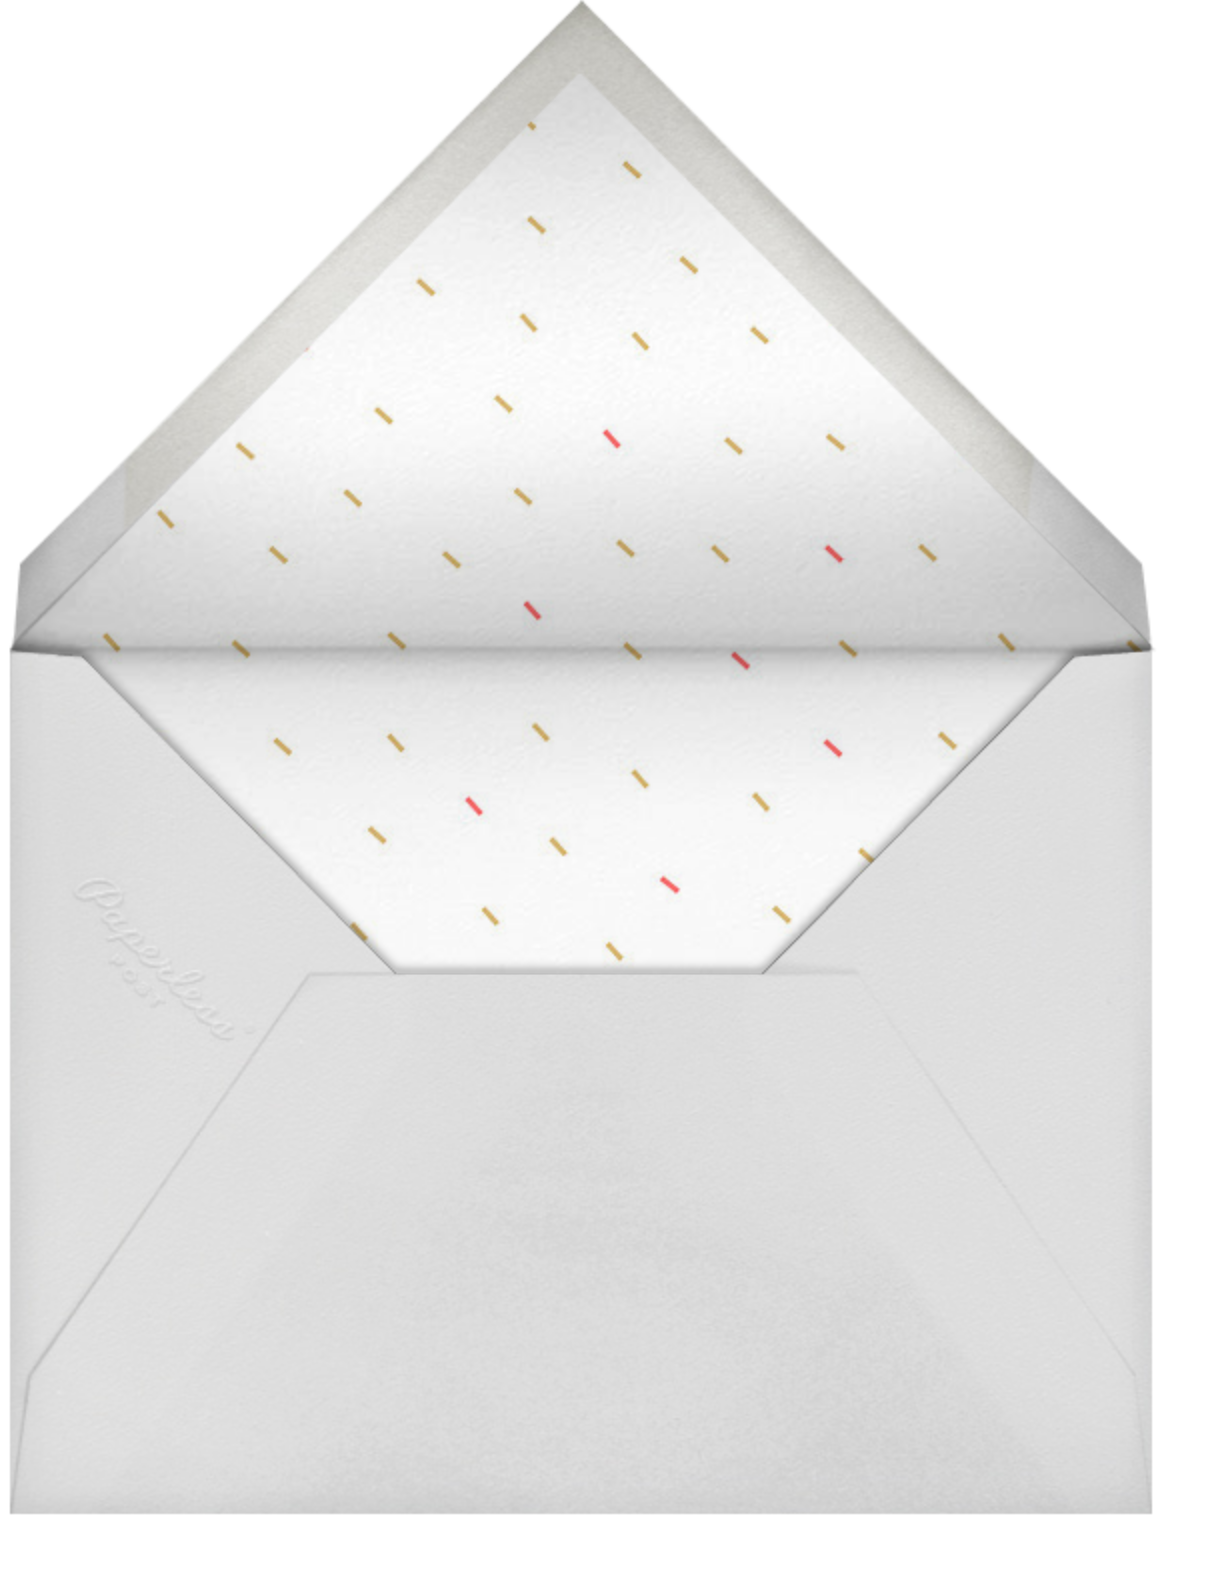 Full-Page Photo (Double-Sided) - Red - Paperless Post - Envelope